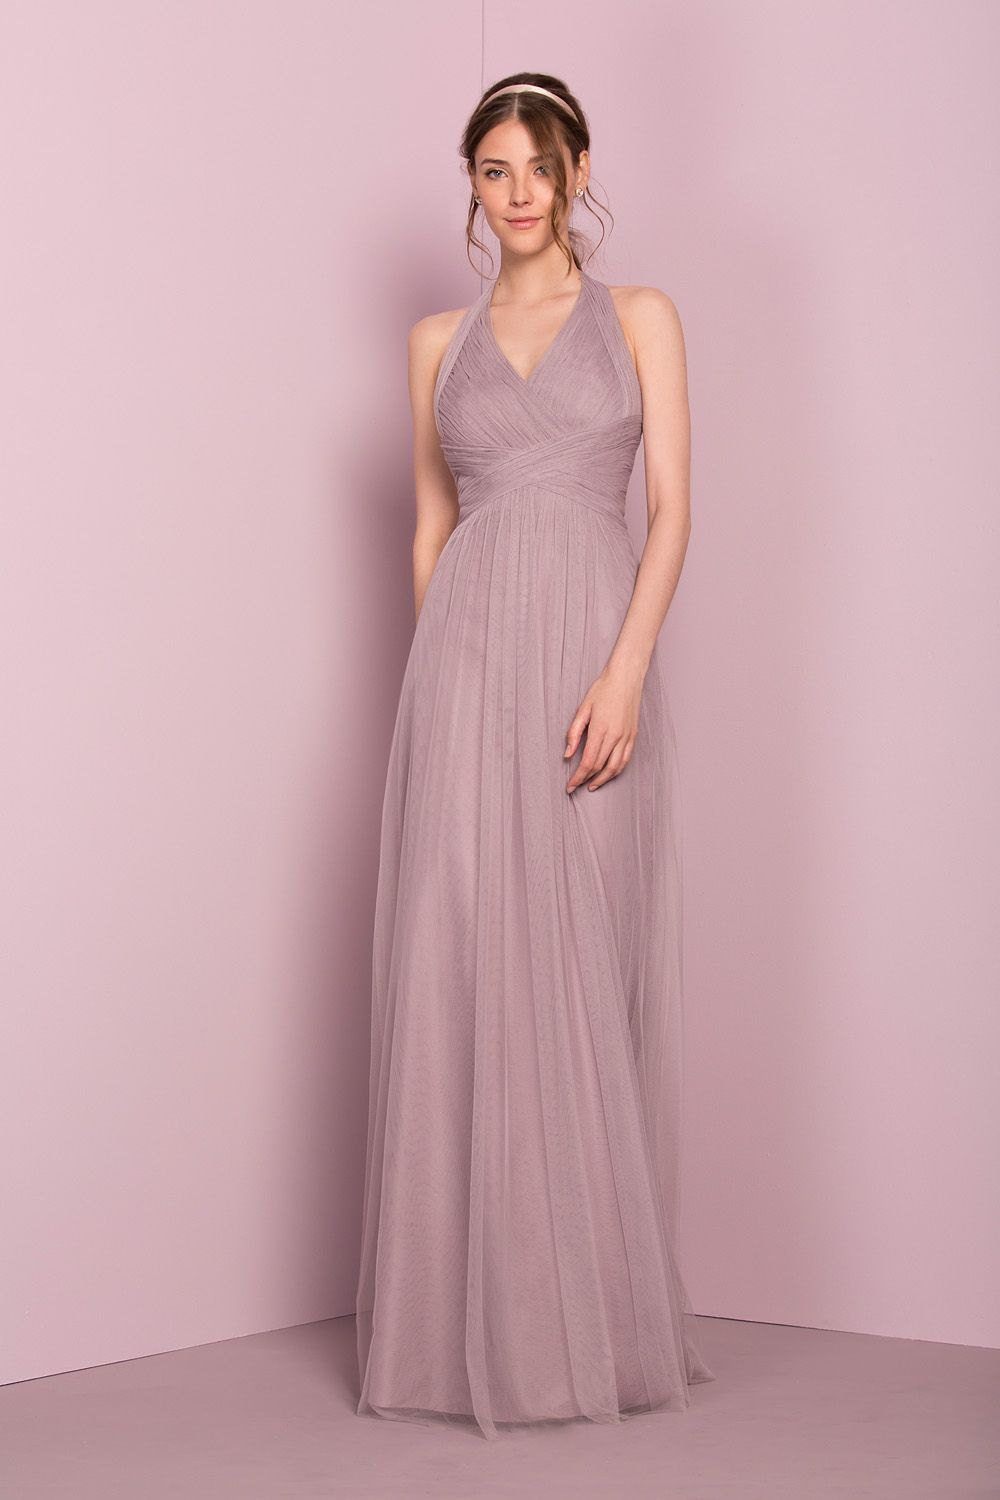 KR 17 WEB – 18627 – Front | Bridesmaid Dresses | Pinterest